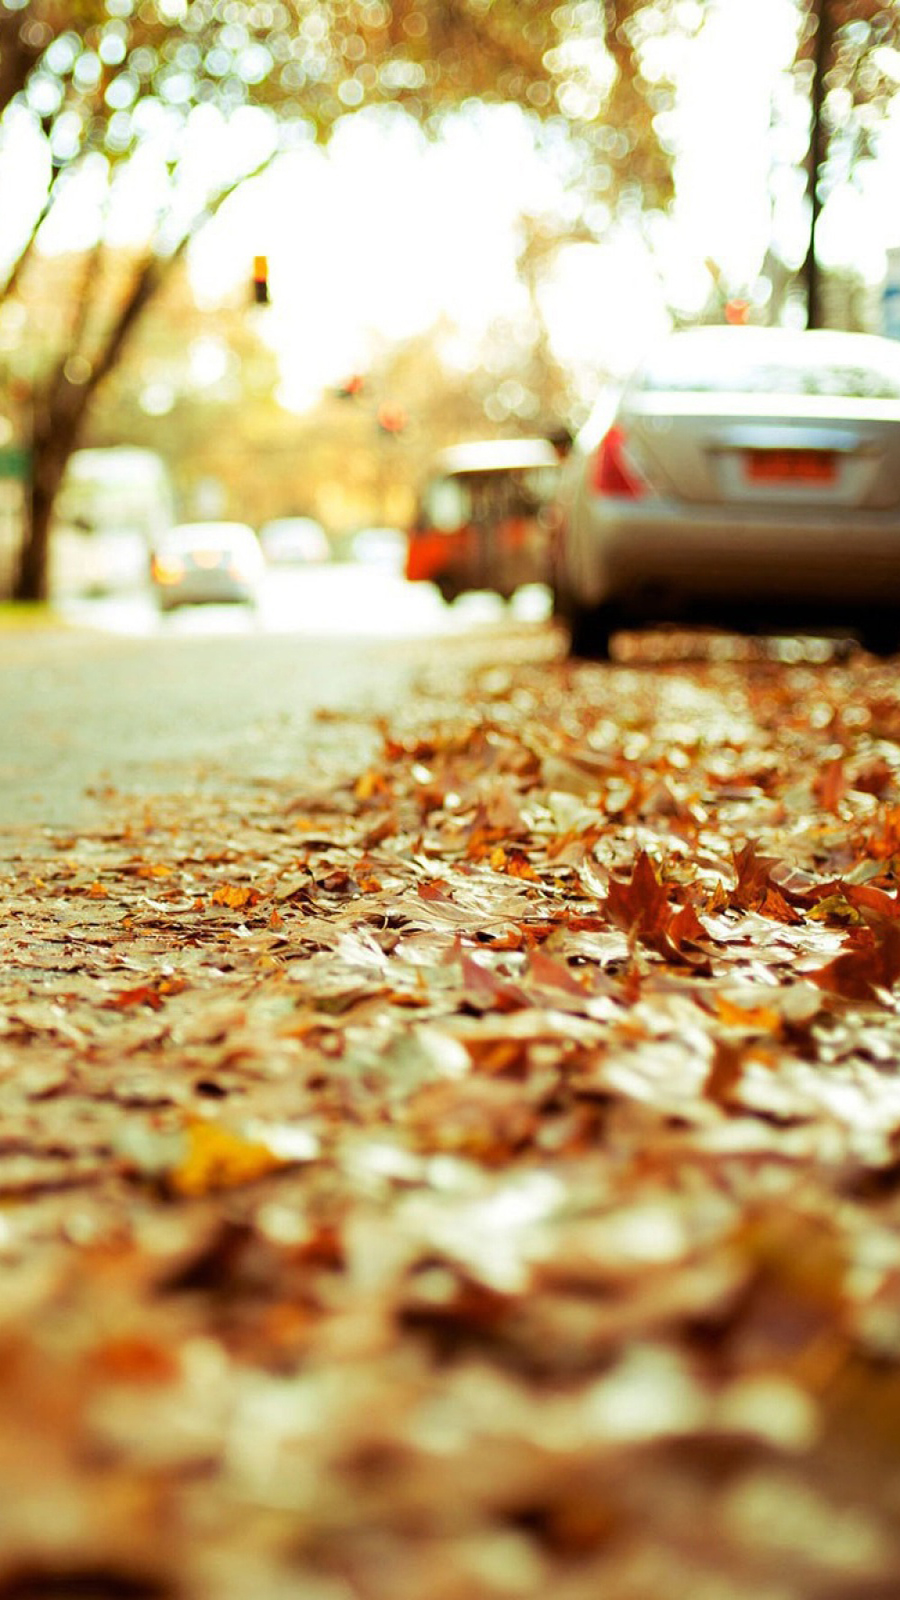 Autumn Fallen Leaves Wallpapers Free Download